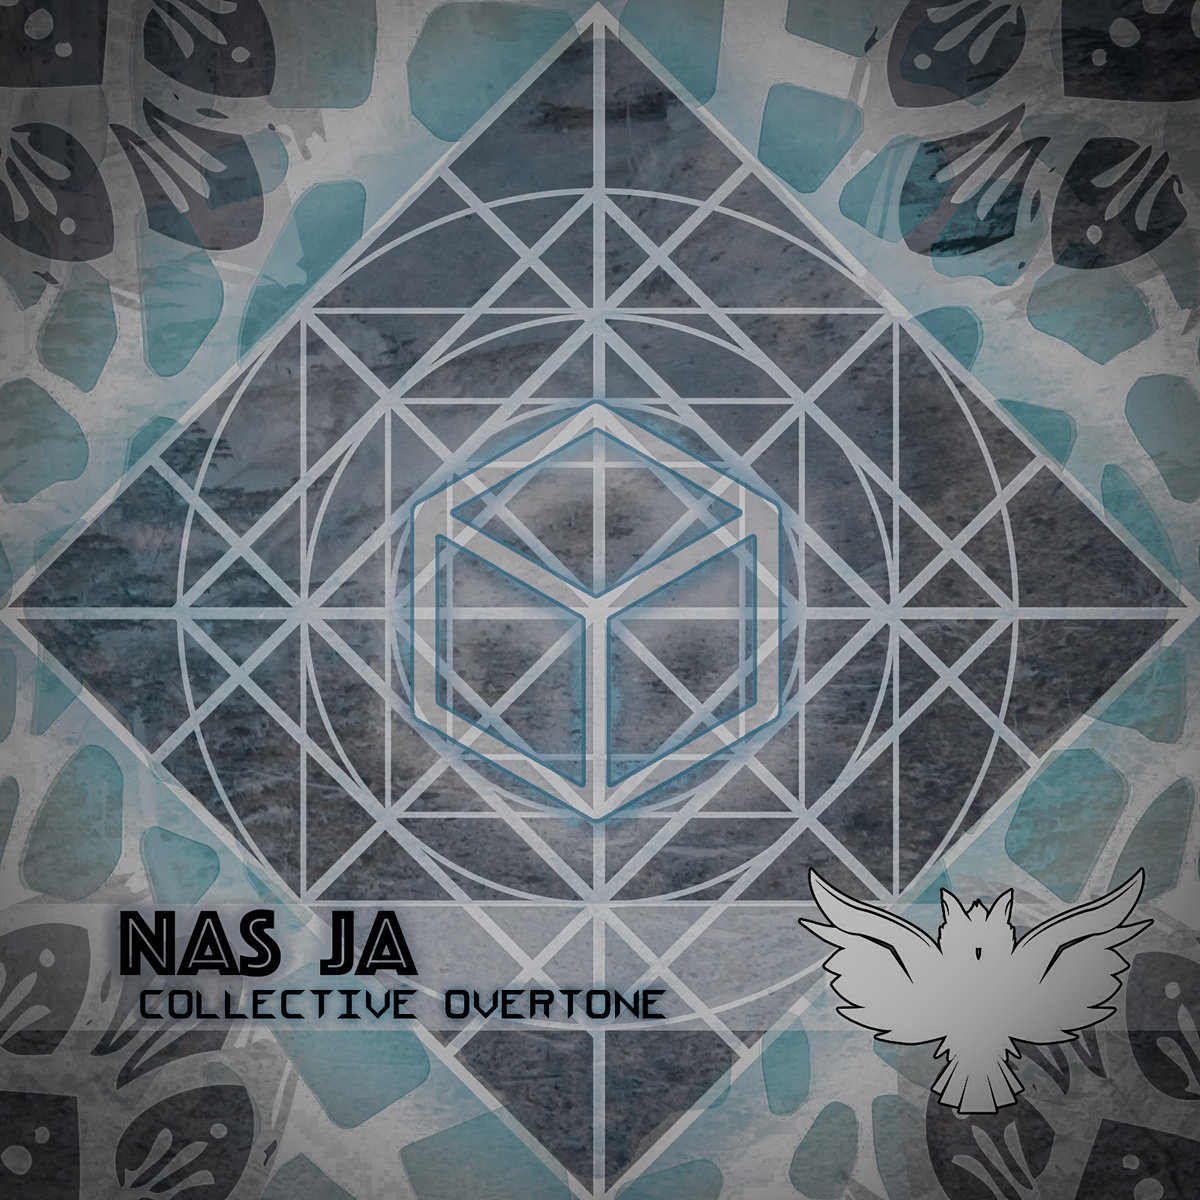 Nas-Ja - Collective Overtone